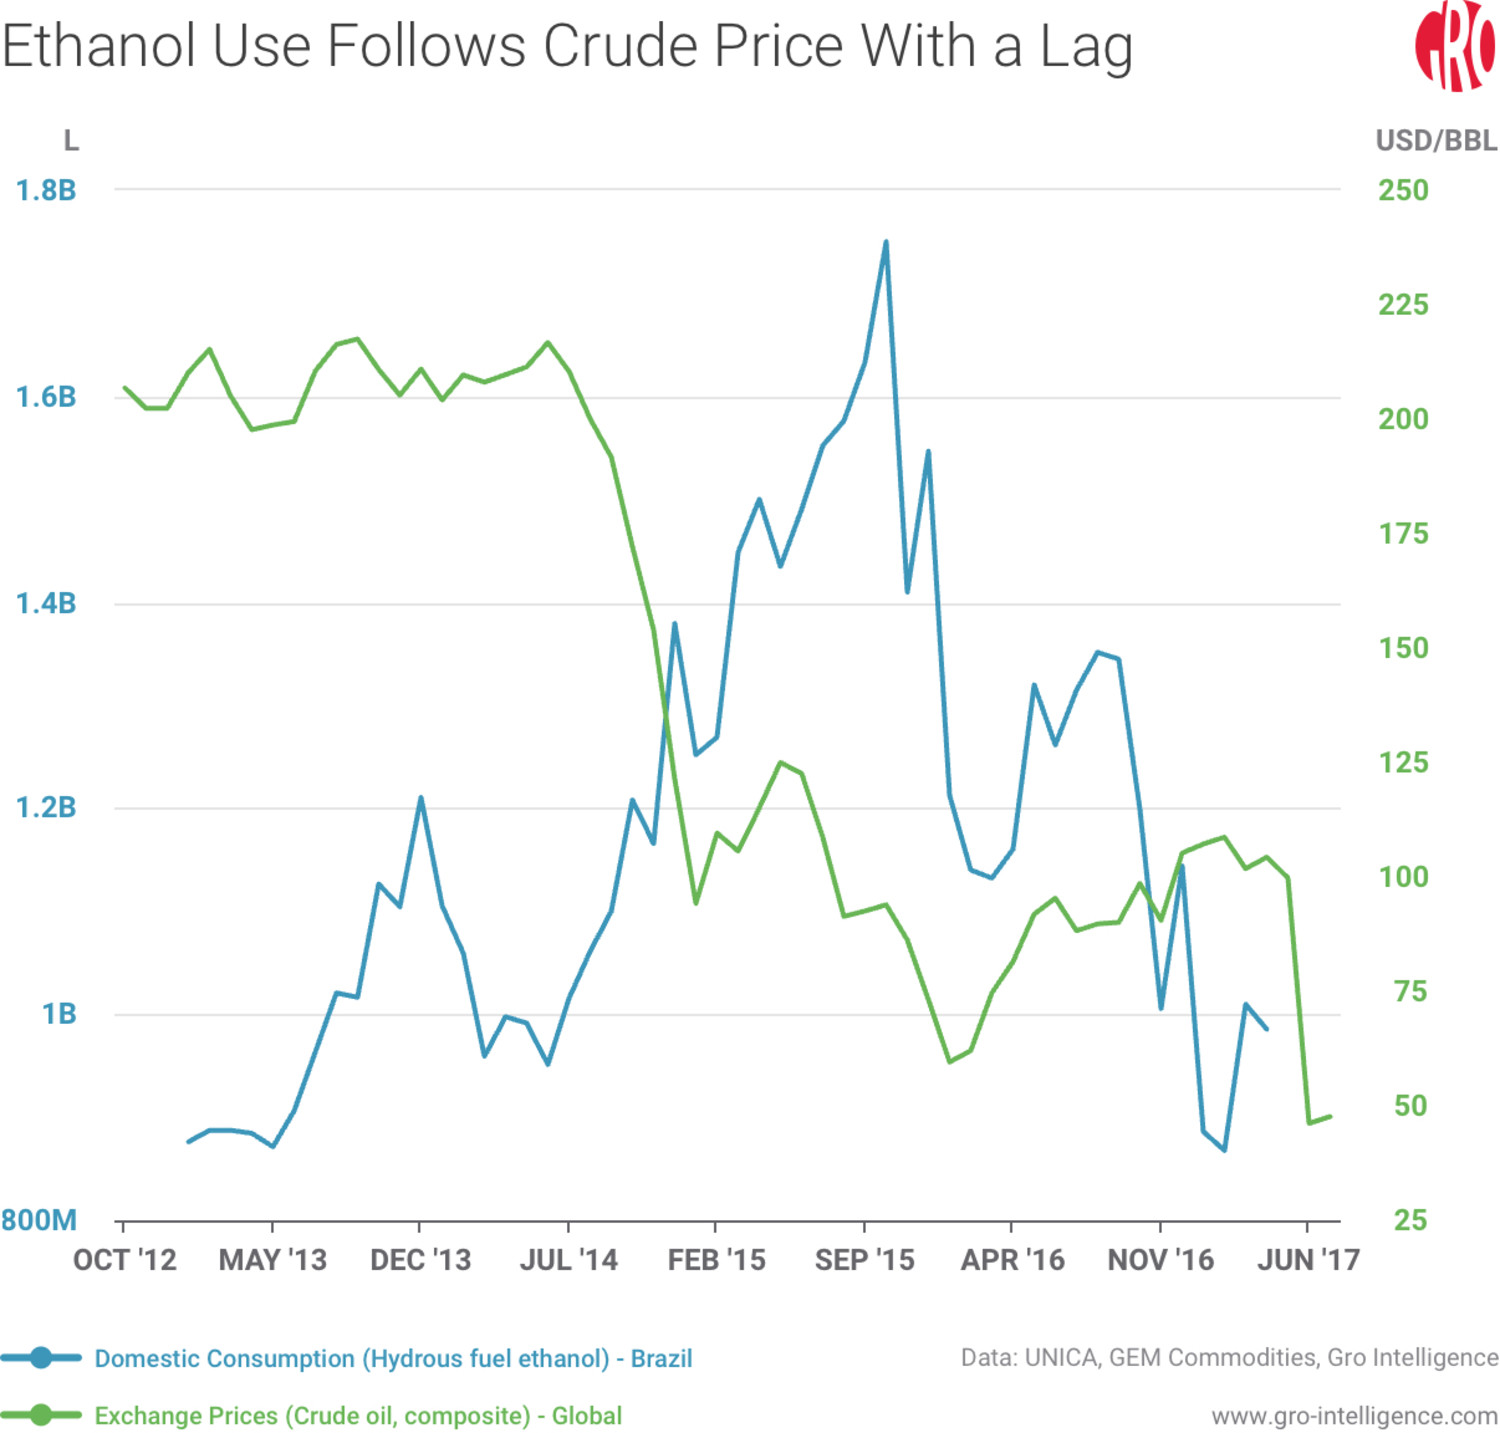 Ethanol Use Follows Crude Prices With a Lag